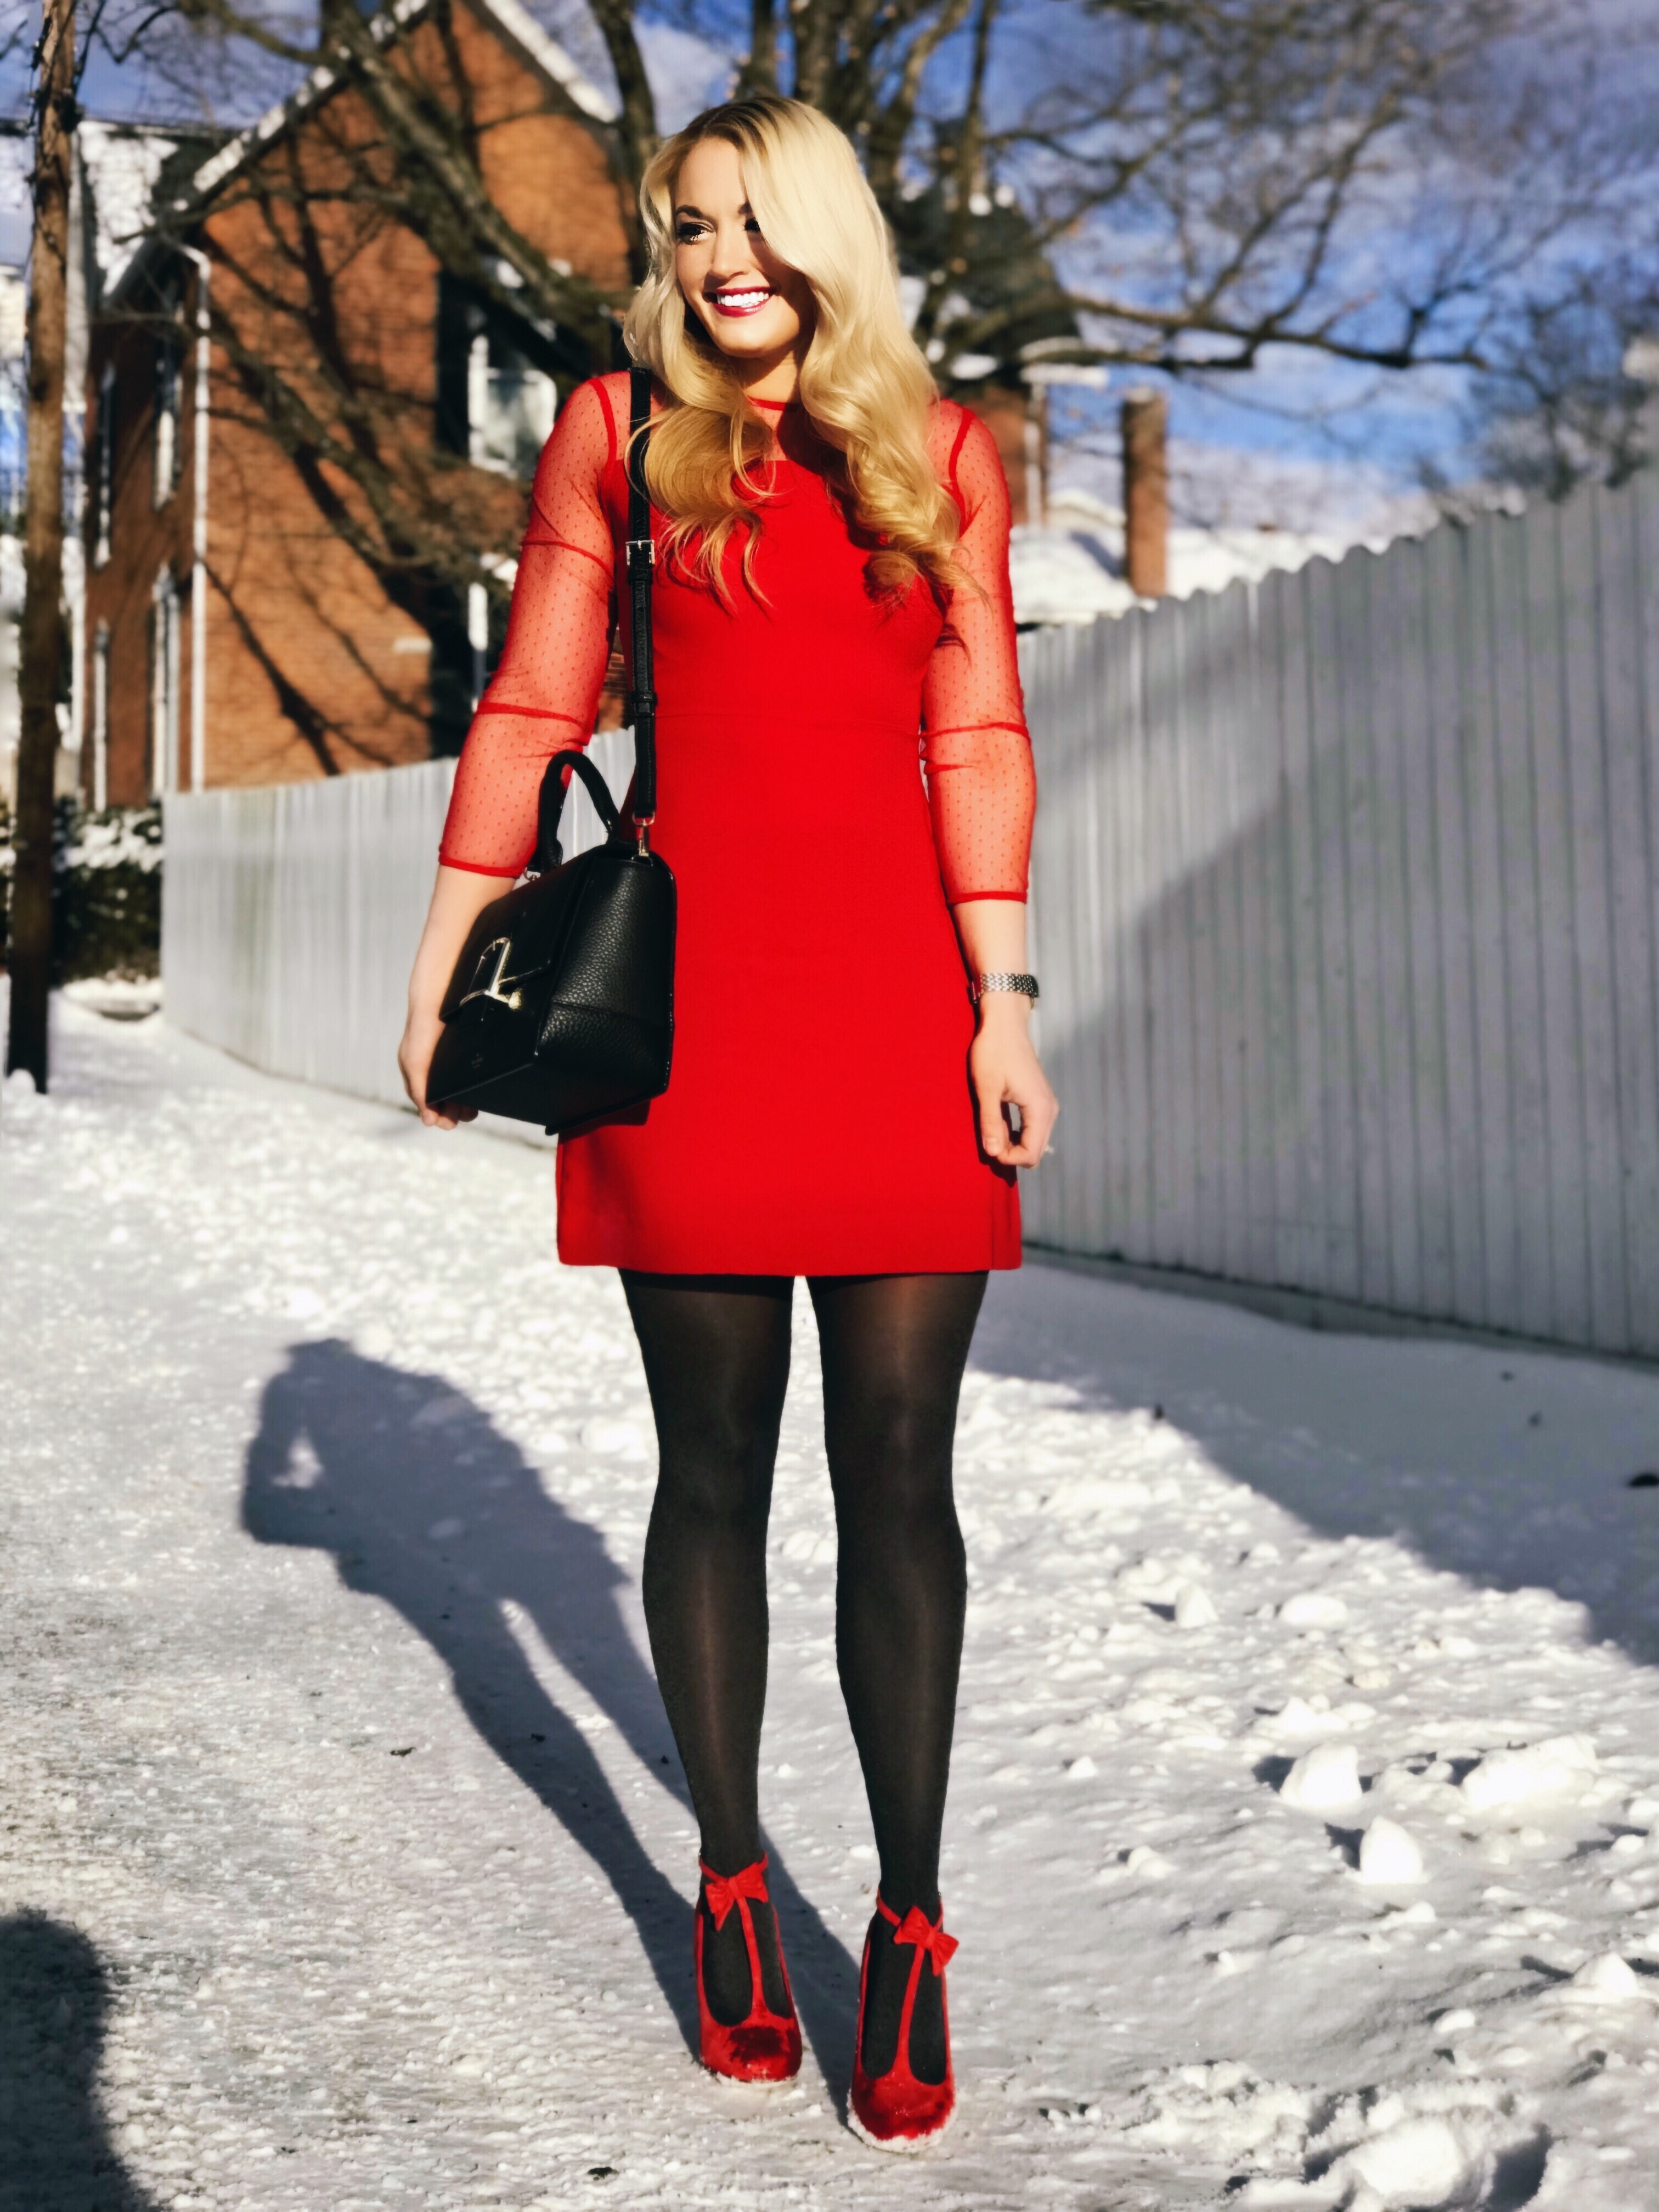 Red Dress | Mesh Dress | Valentine's Day Outfit | www.styleherstrong.com